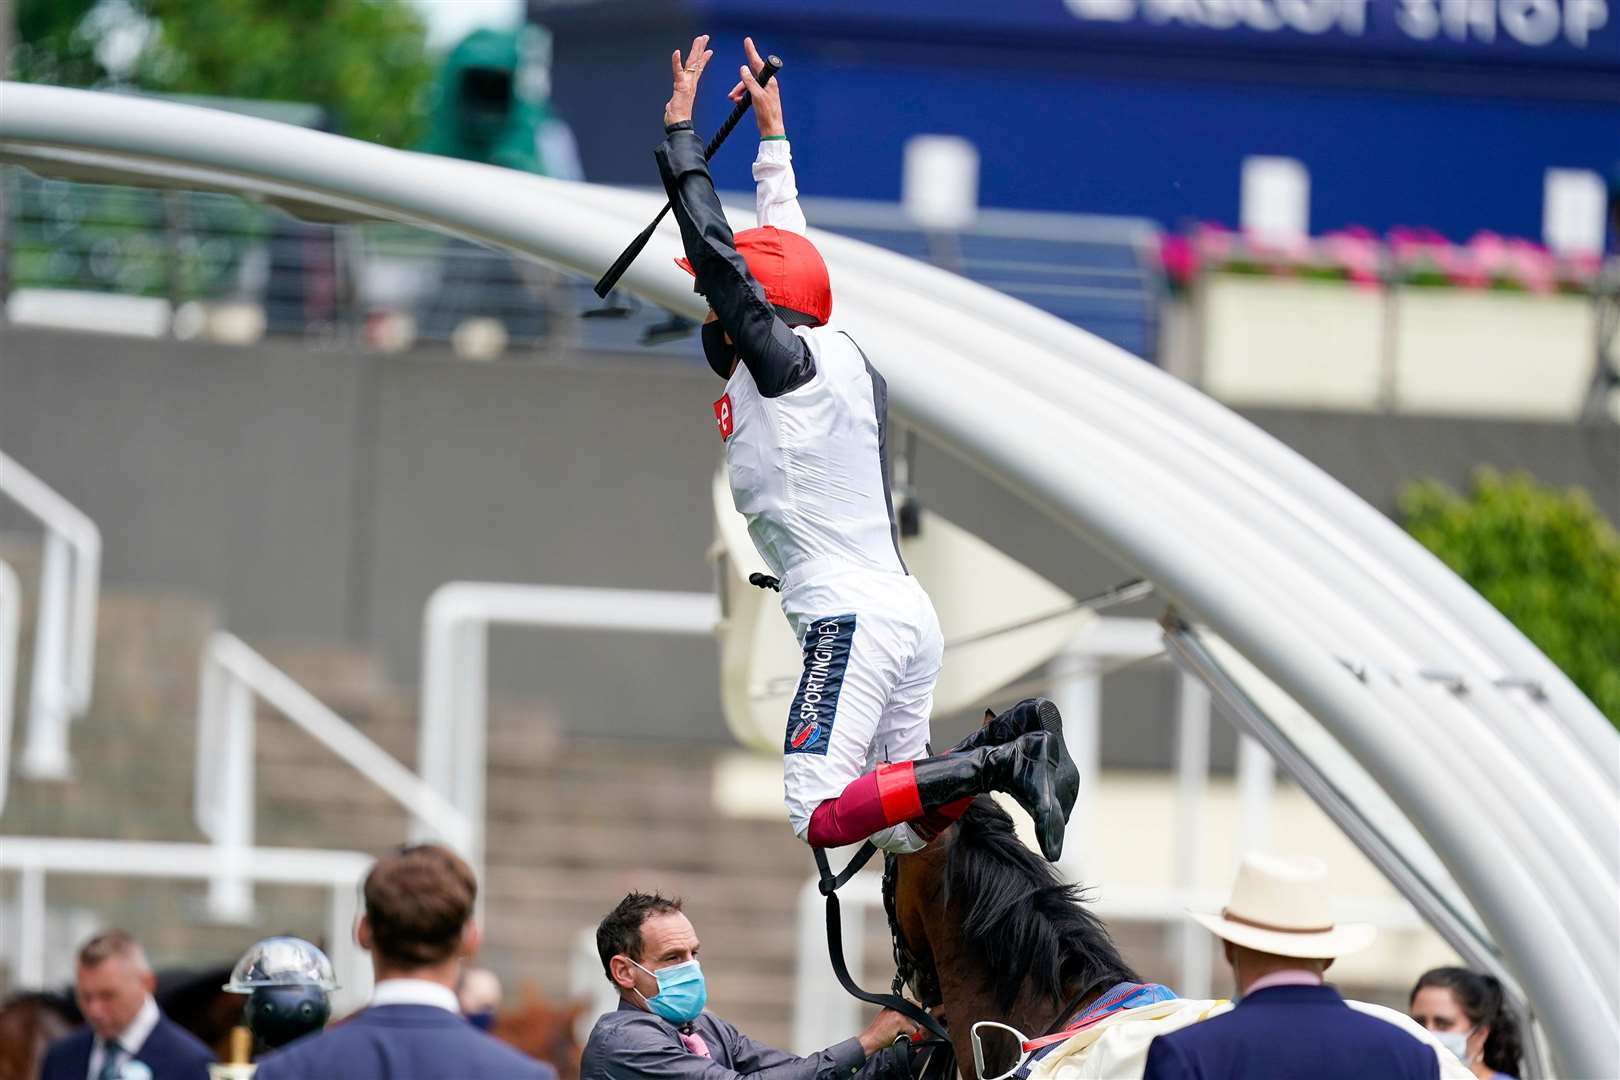 ASCOT, ENGLAND - JUNE 16: Frankie Dettori leaps from Frankly Darling after winning The Ribblesdale Stakes at Ascot Racecourse on Day 1 of the Royal Meeting on June 16, 2020 in Ascot, England. The Queen will miss out on attending Royal Ascot in person for the first time in her 68 year reign. Her Majesty is reported to be planning to watch the racing from home at Windsor Castle, but she will not be able to attend, as the meet goes on behind closed doors due to the Covid-19 pandemic. (Photo by Alan Crowhurst/Getty Images). (37540150)